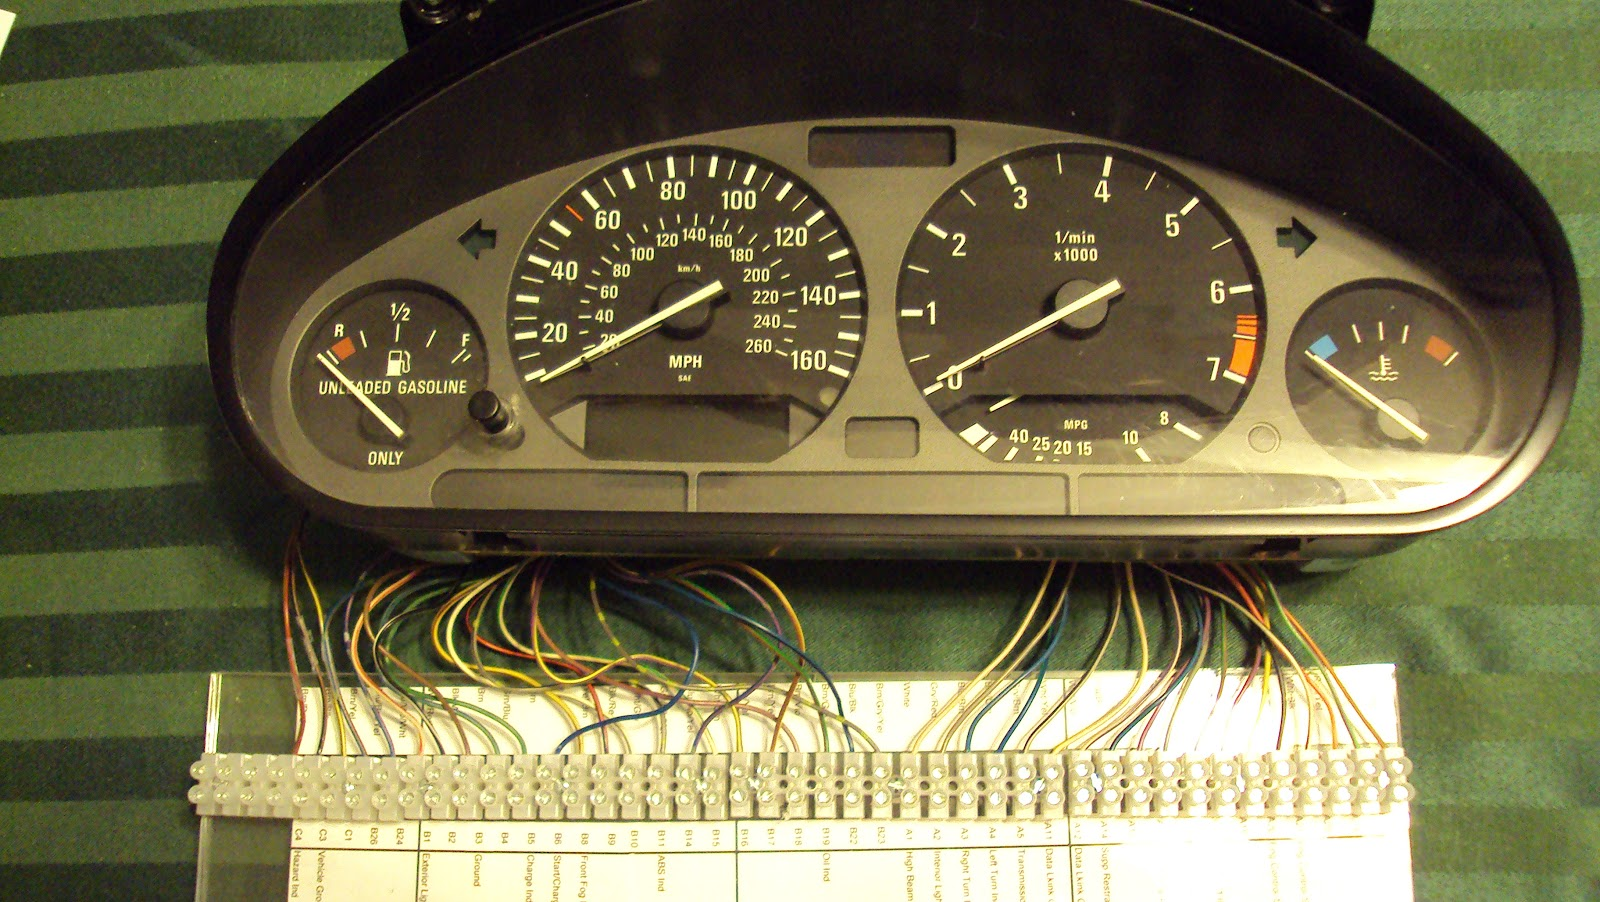 William's EV Bimmer 325i: 1992 BMW 325i Instrument Cluster 10